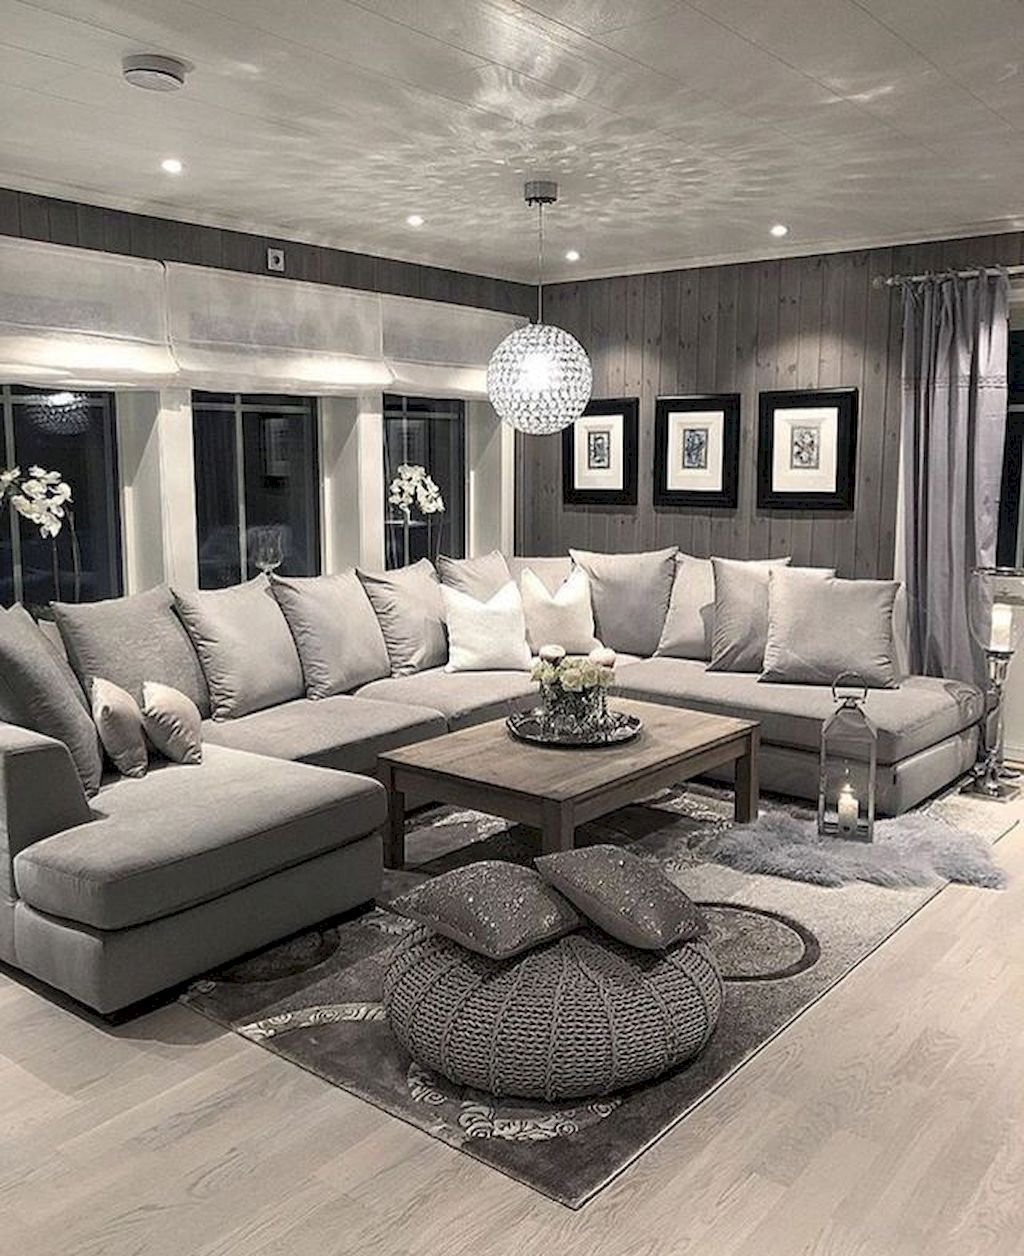 Main Living Room Lighting Ideas Tips: Tips On Choosing A Sofa For Your Living Room